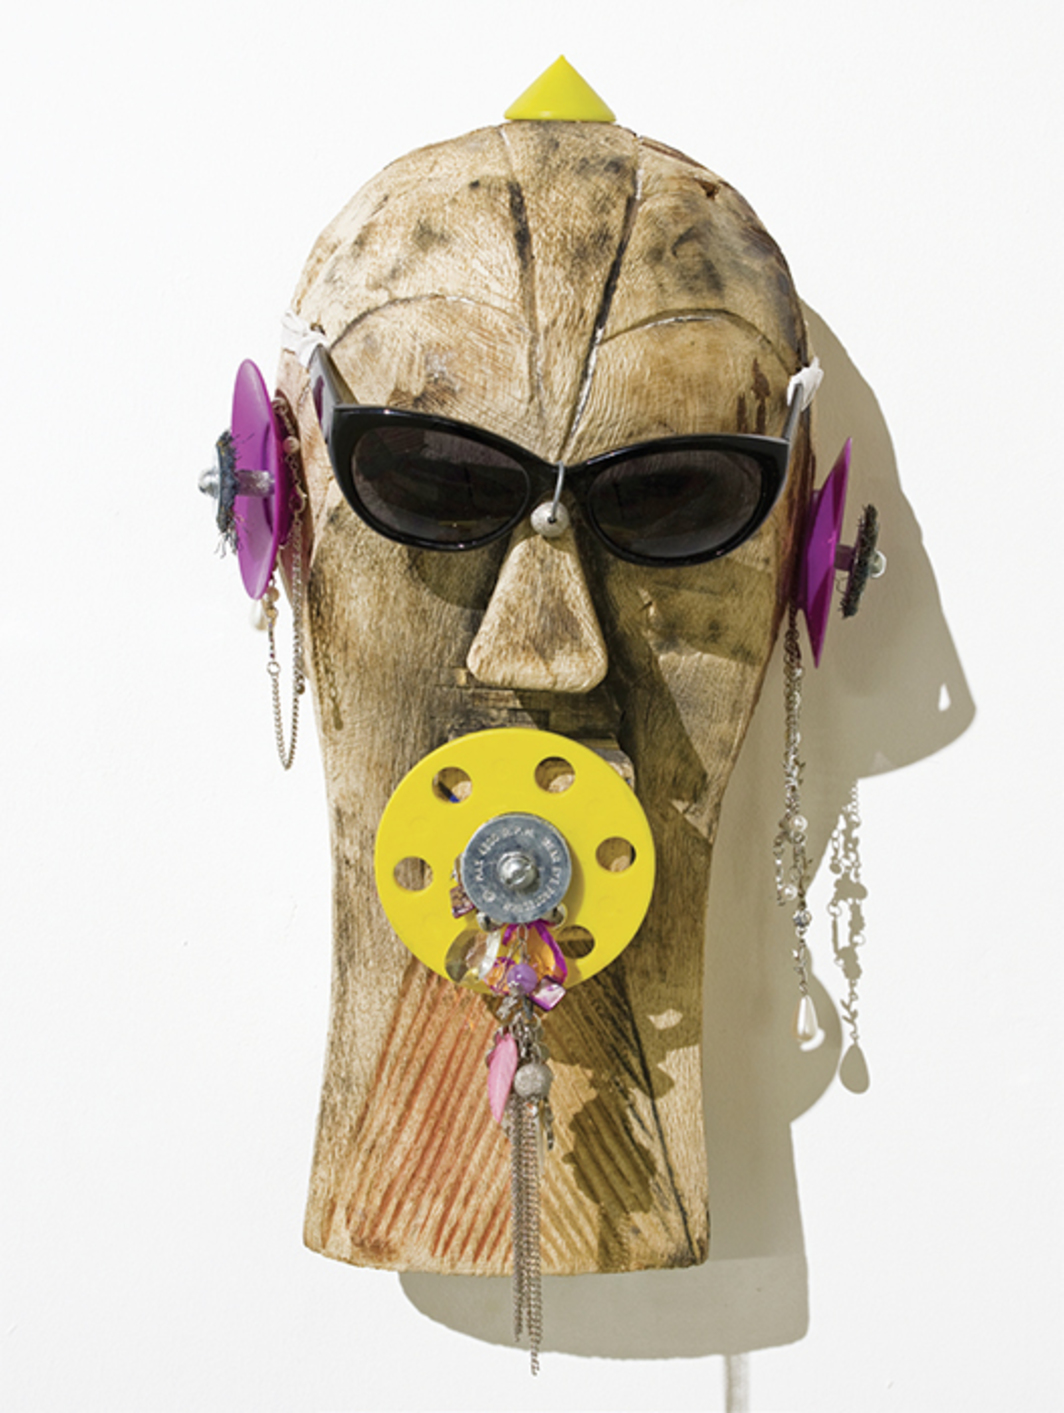 Pascale Marthine Tayou, Masque délavé (Faded Mask) (detail), 2015, mixed media on twenty-five wooden masks, dimensions variable.